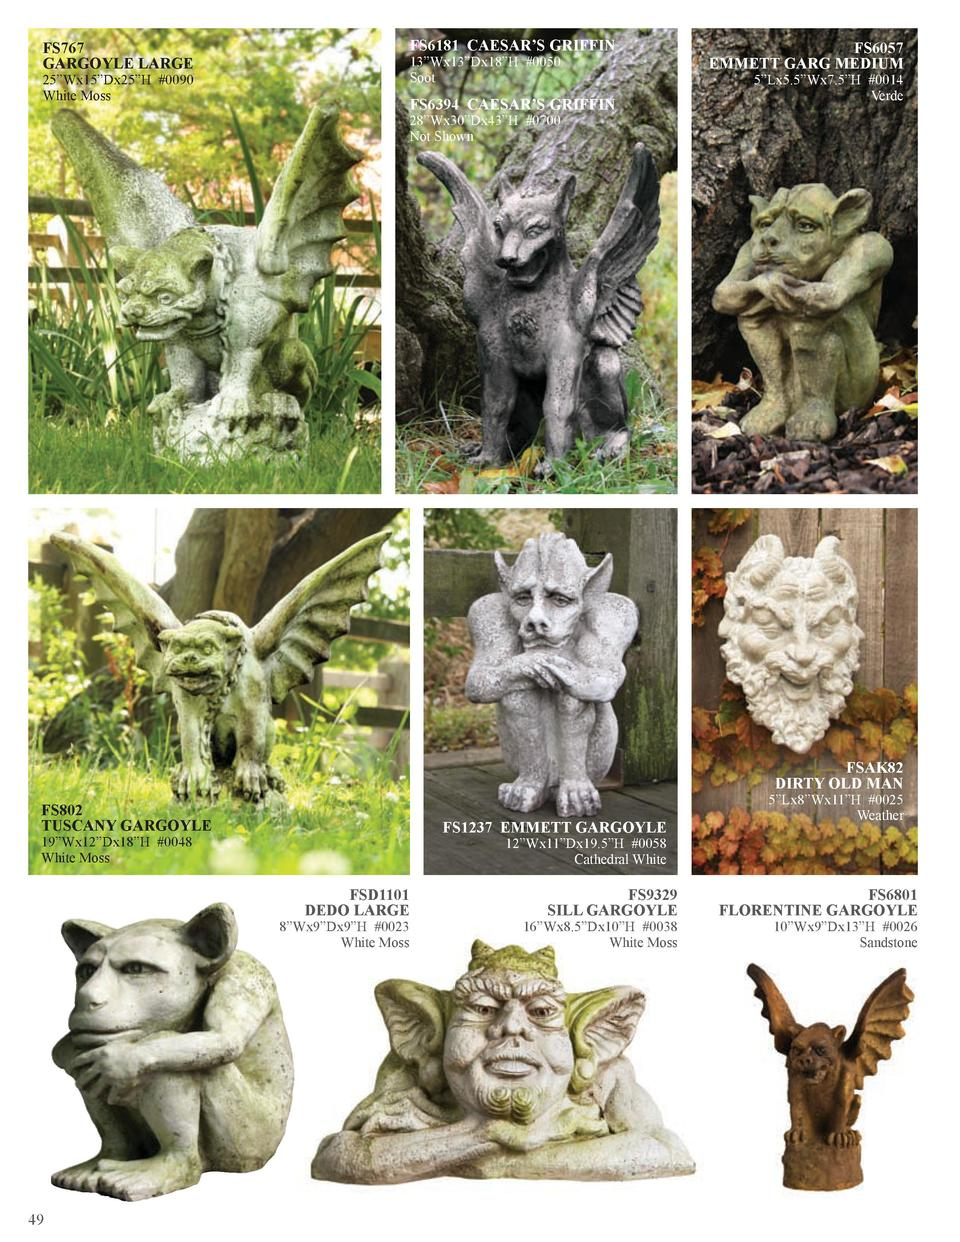 FS767 GARGOYLE LARGE  25   Wx15   Dx25   H  0090 White Moss  FS6181 CAESAR   S GRIFFIN 13   Wx13   Dx18   H  0050 Soot  FS...